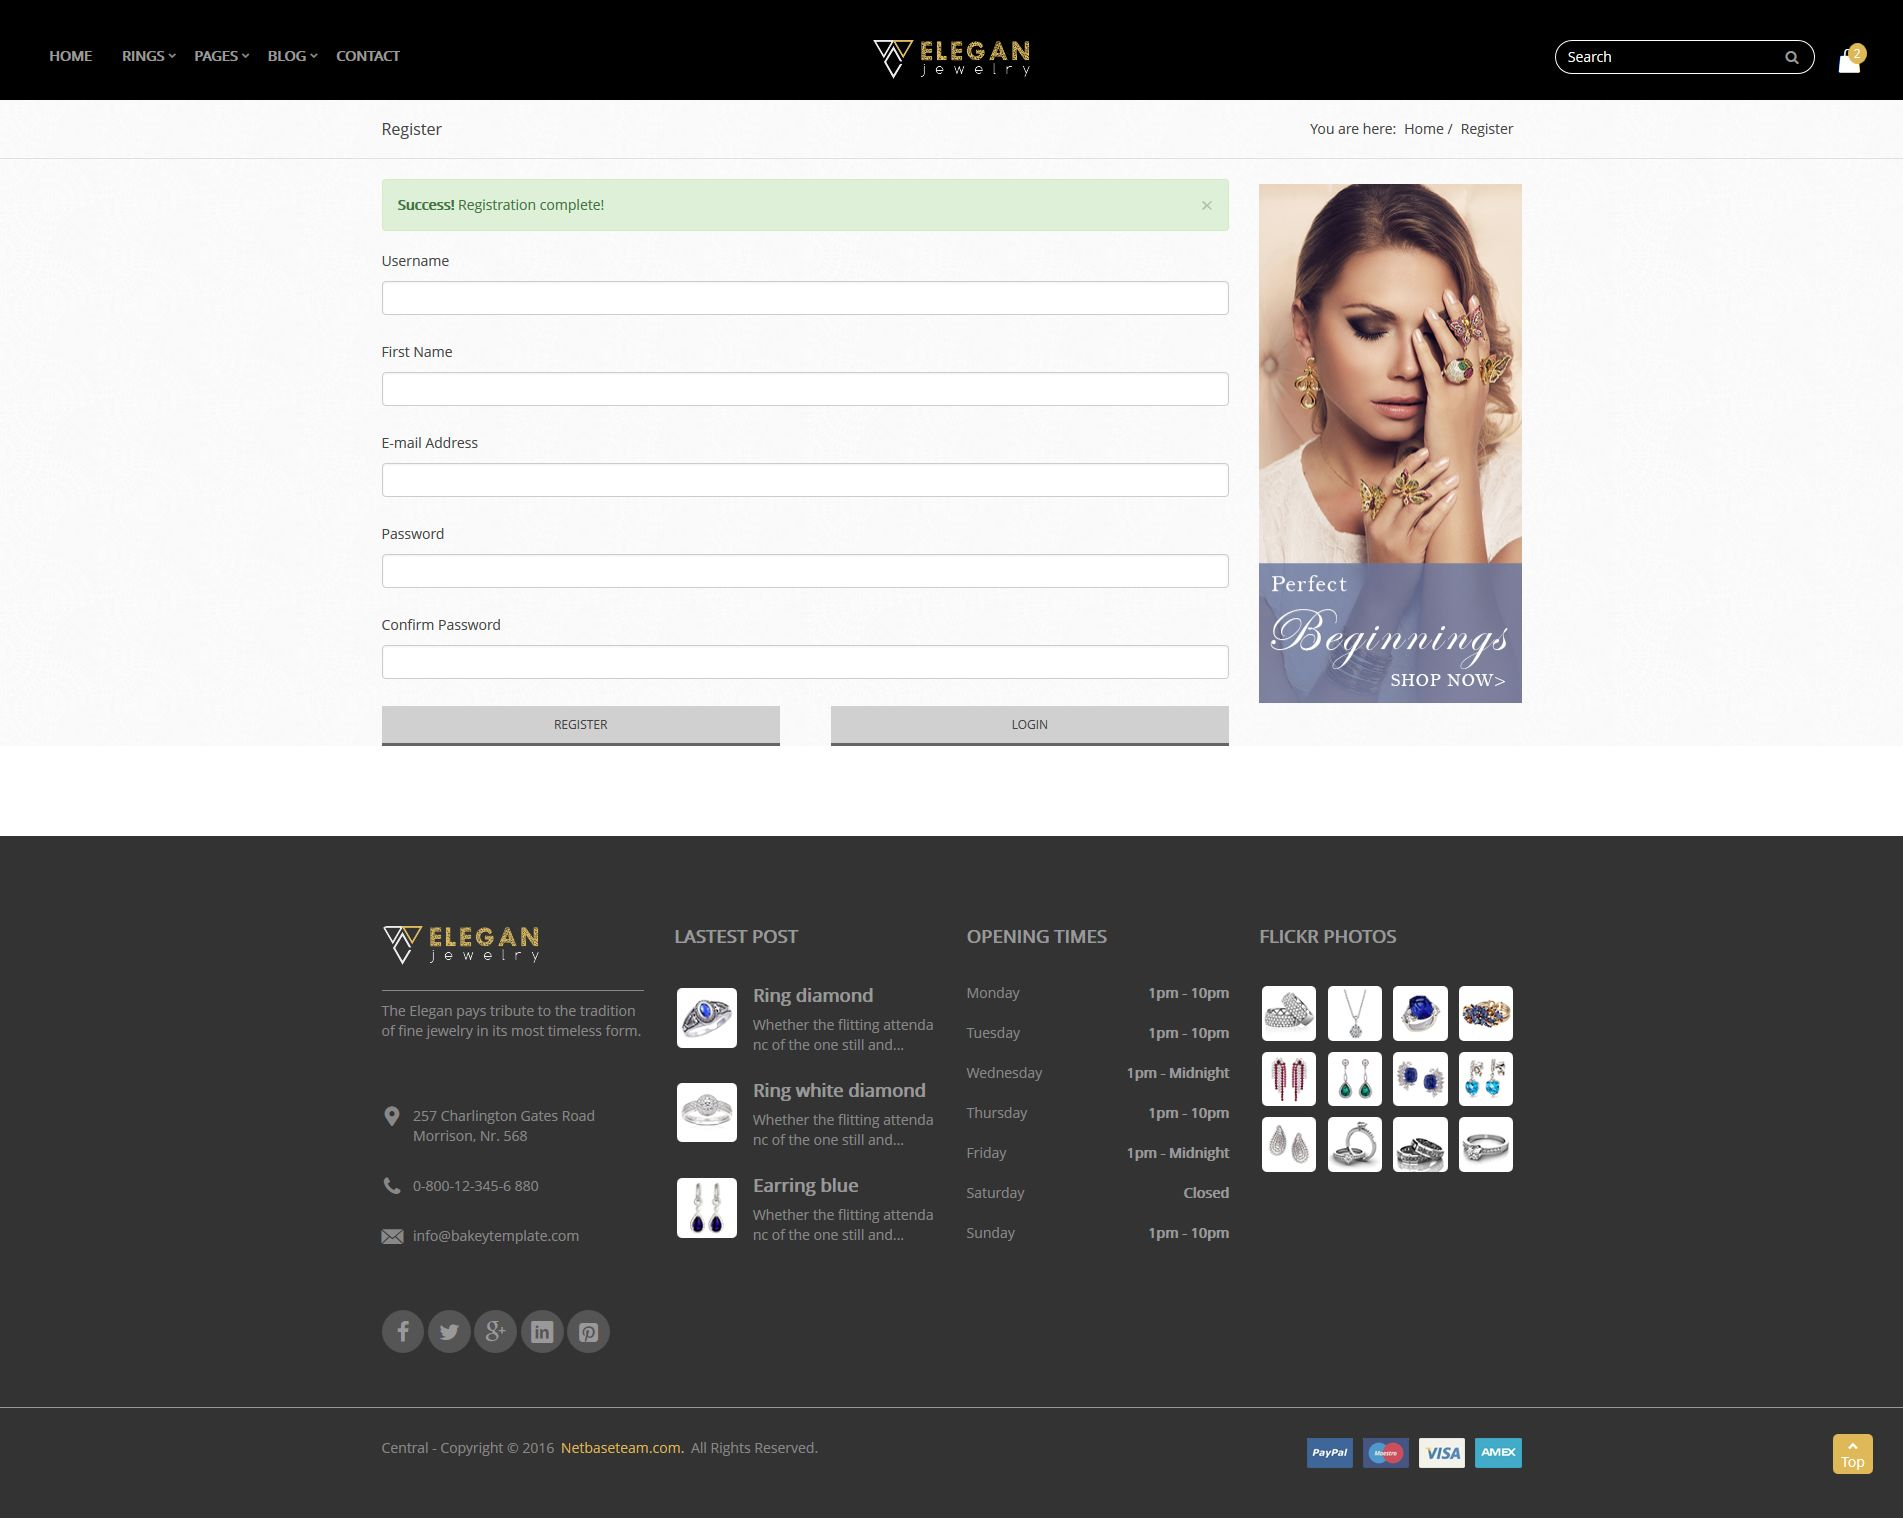 ELEGAN - Responsive HTML5 Jewelry Template by netbaseteam | ThemeForest